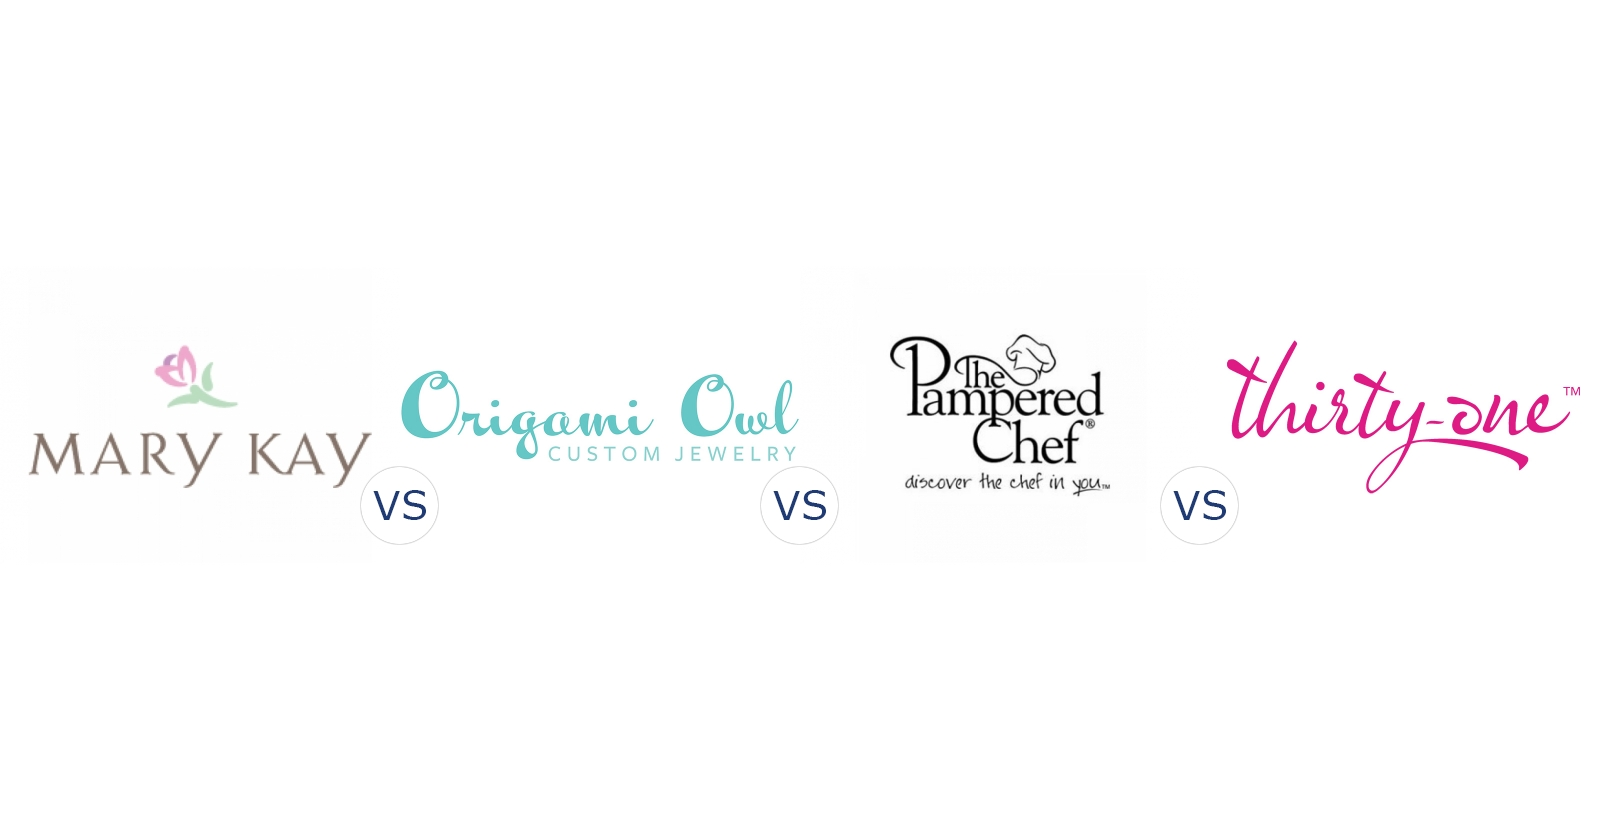 Mary Kay Vs Origami Owl Vs Pampered Chef Vs Thirty One Gifts